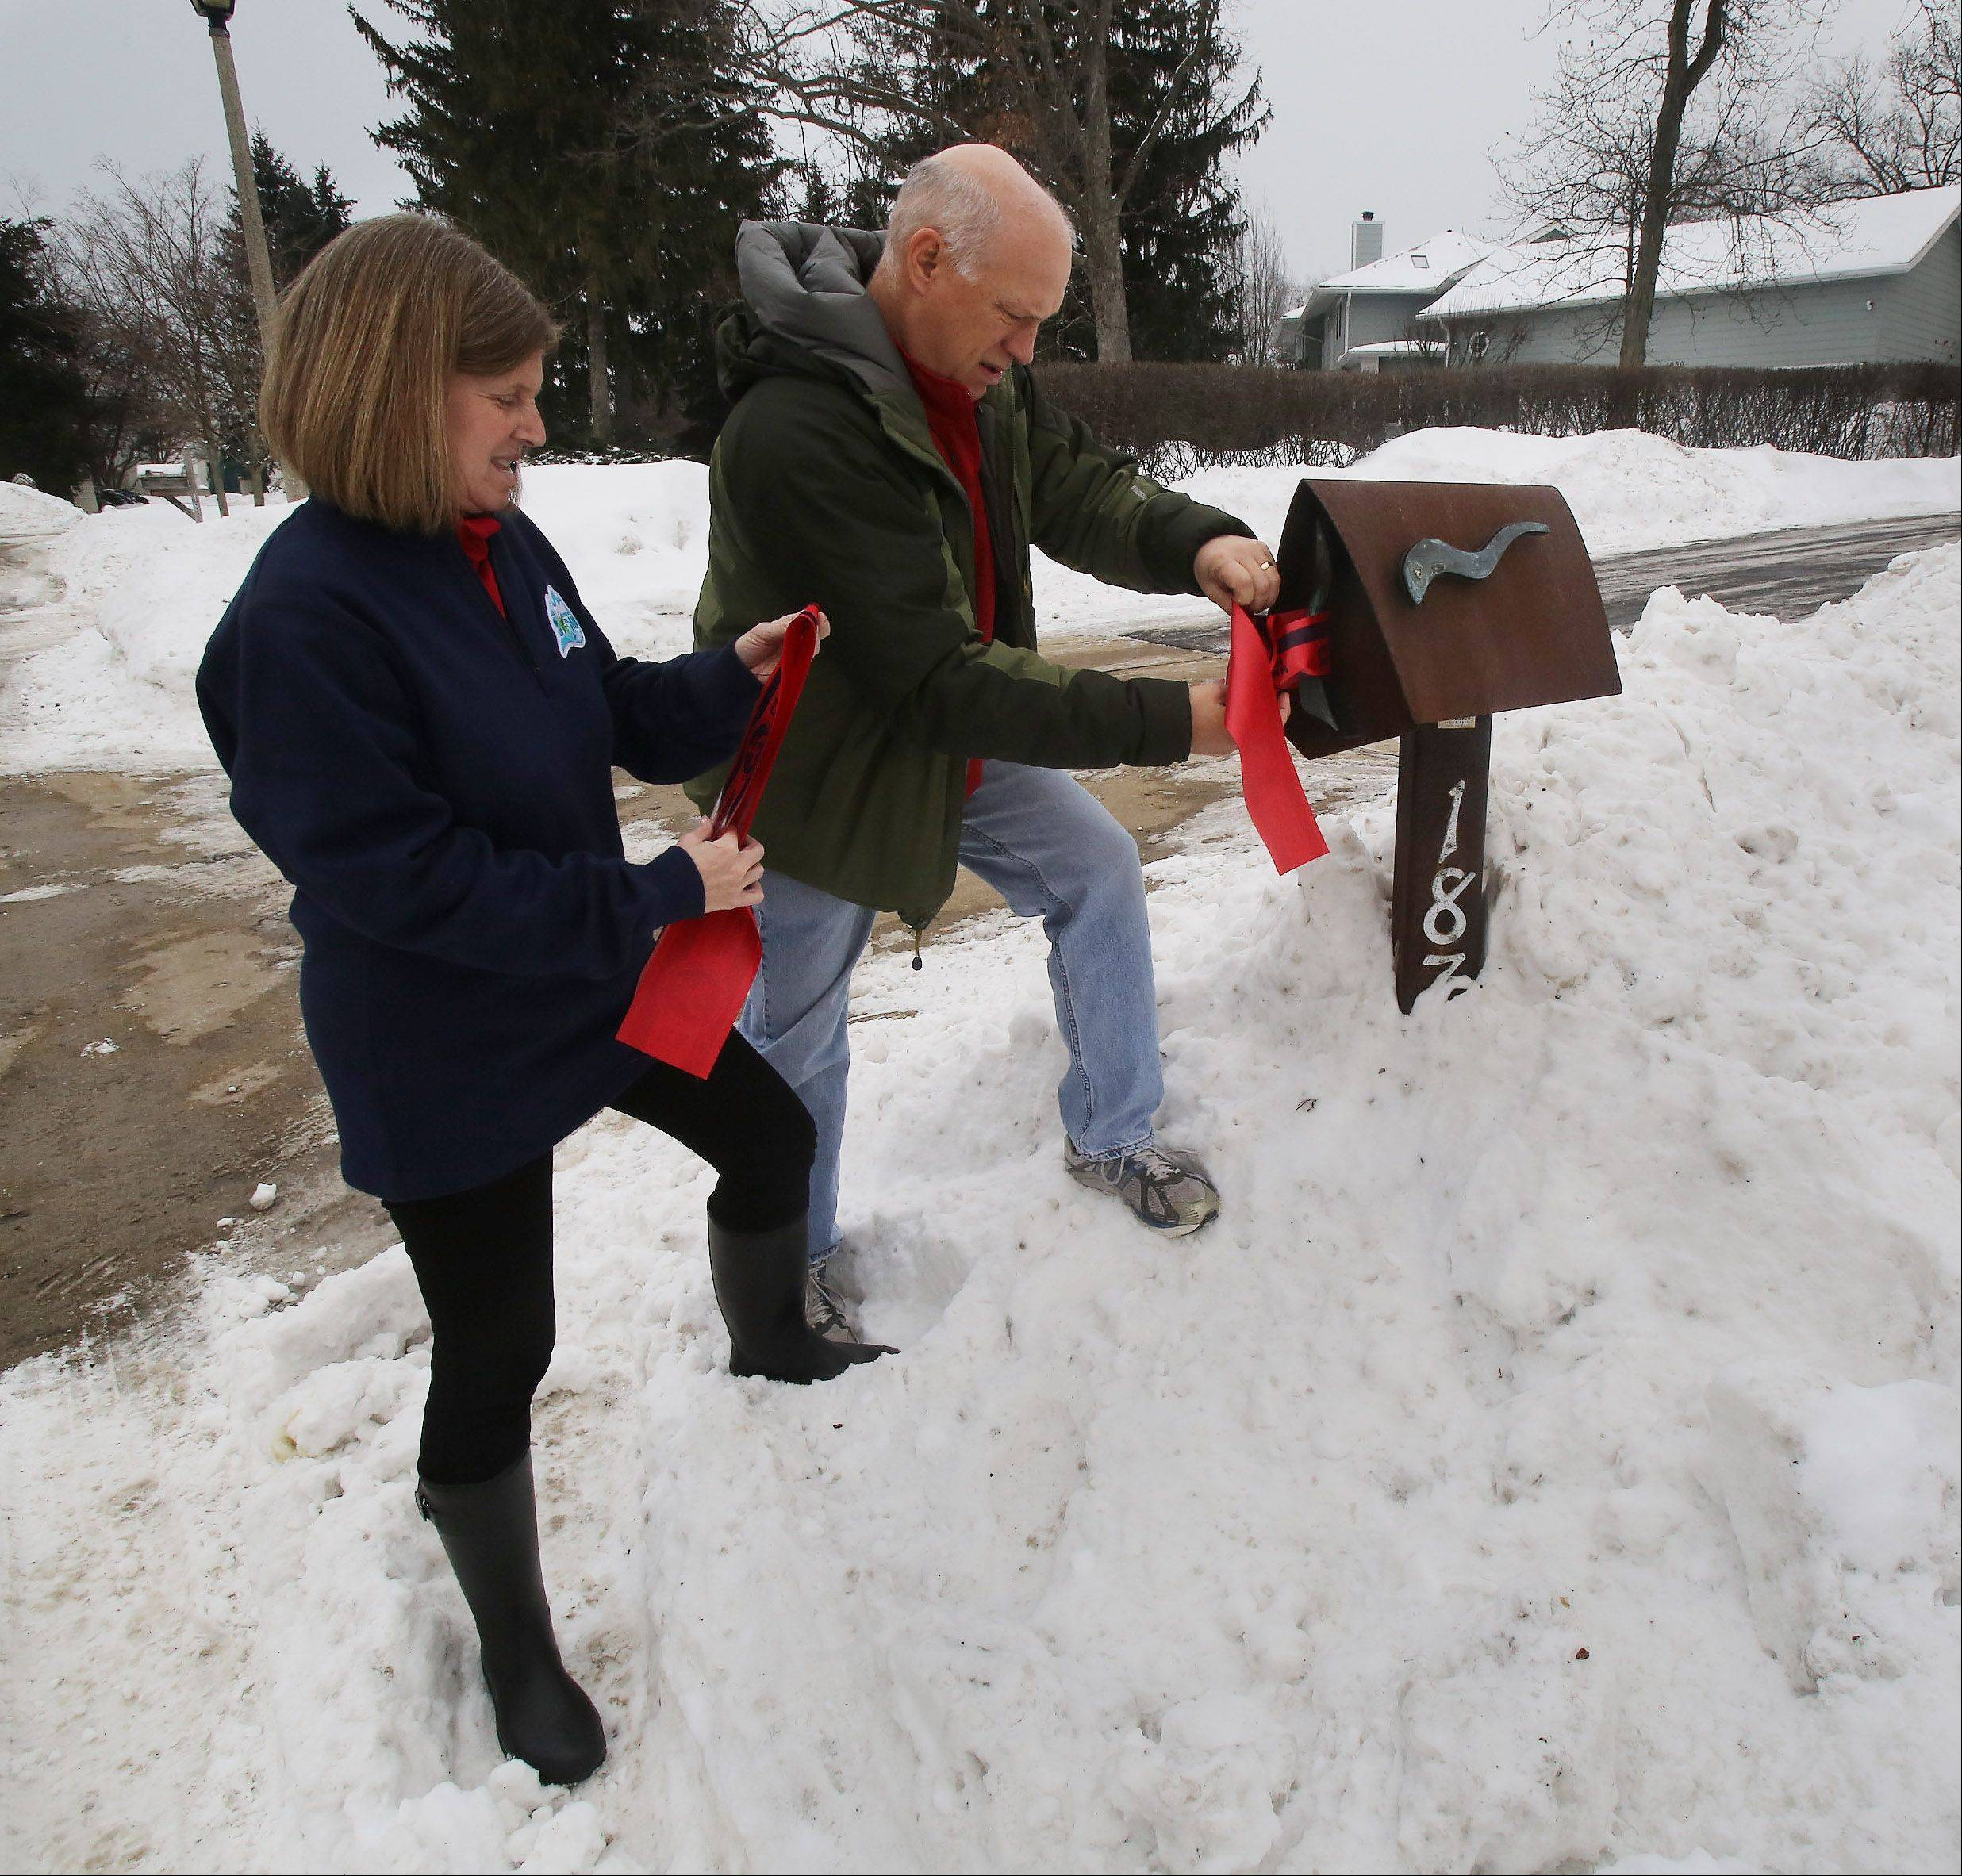 Steve and Marla Brown of Highland Park tie a ribbon to their mailbox before leaving for the Sochi Olympics to watch their son Jason compete in men's figure skating. Highland Park has handed out ribbons to display in support of Jason.